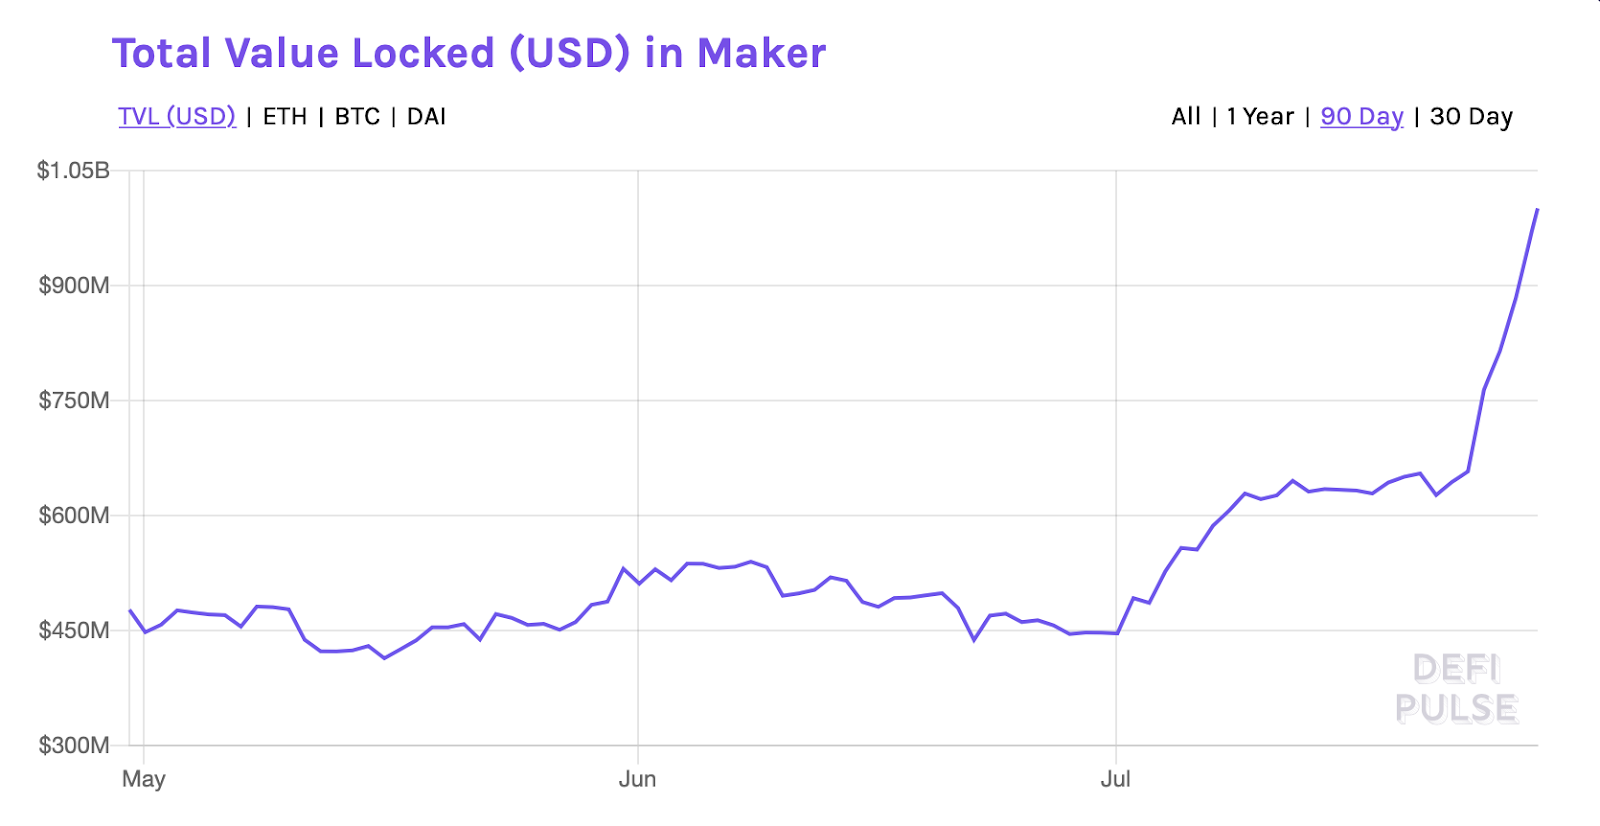 Total Value Locked (USD) in Maker